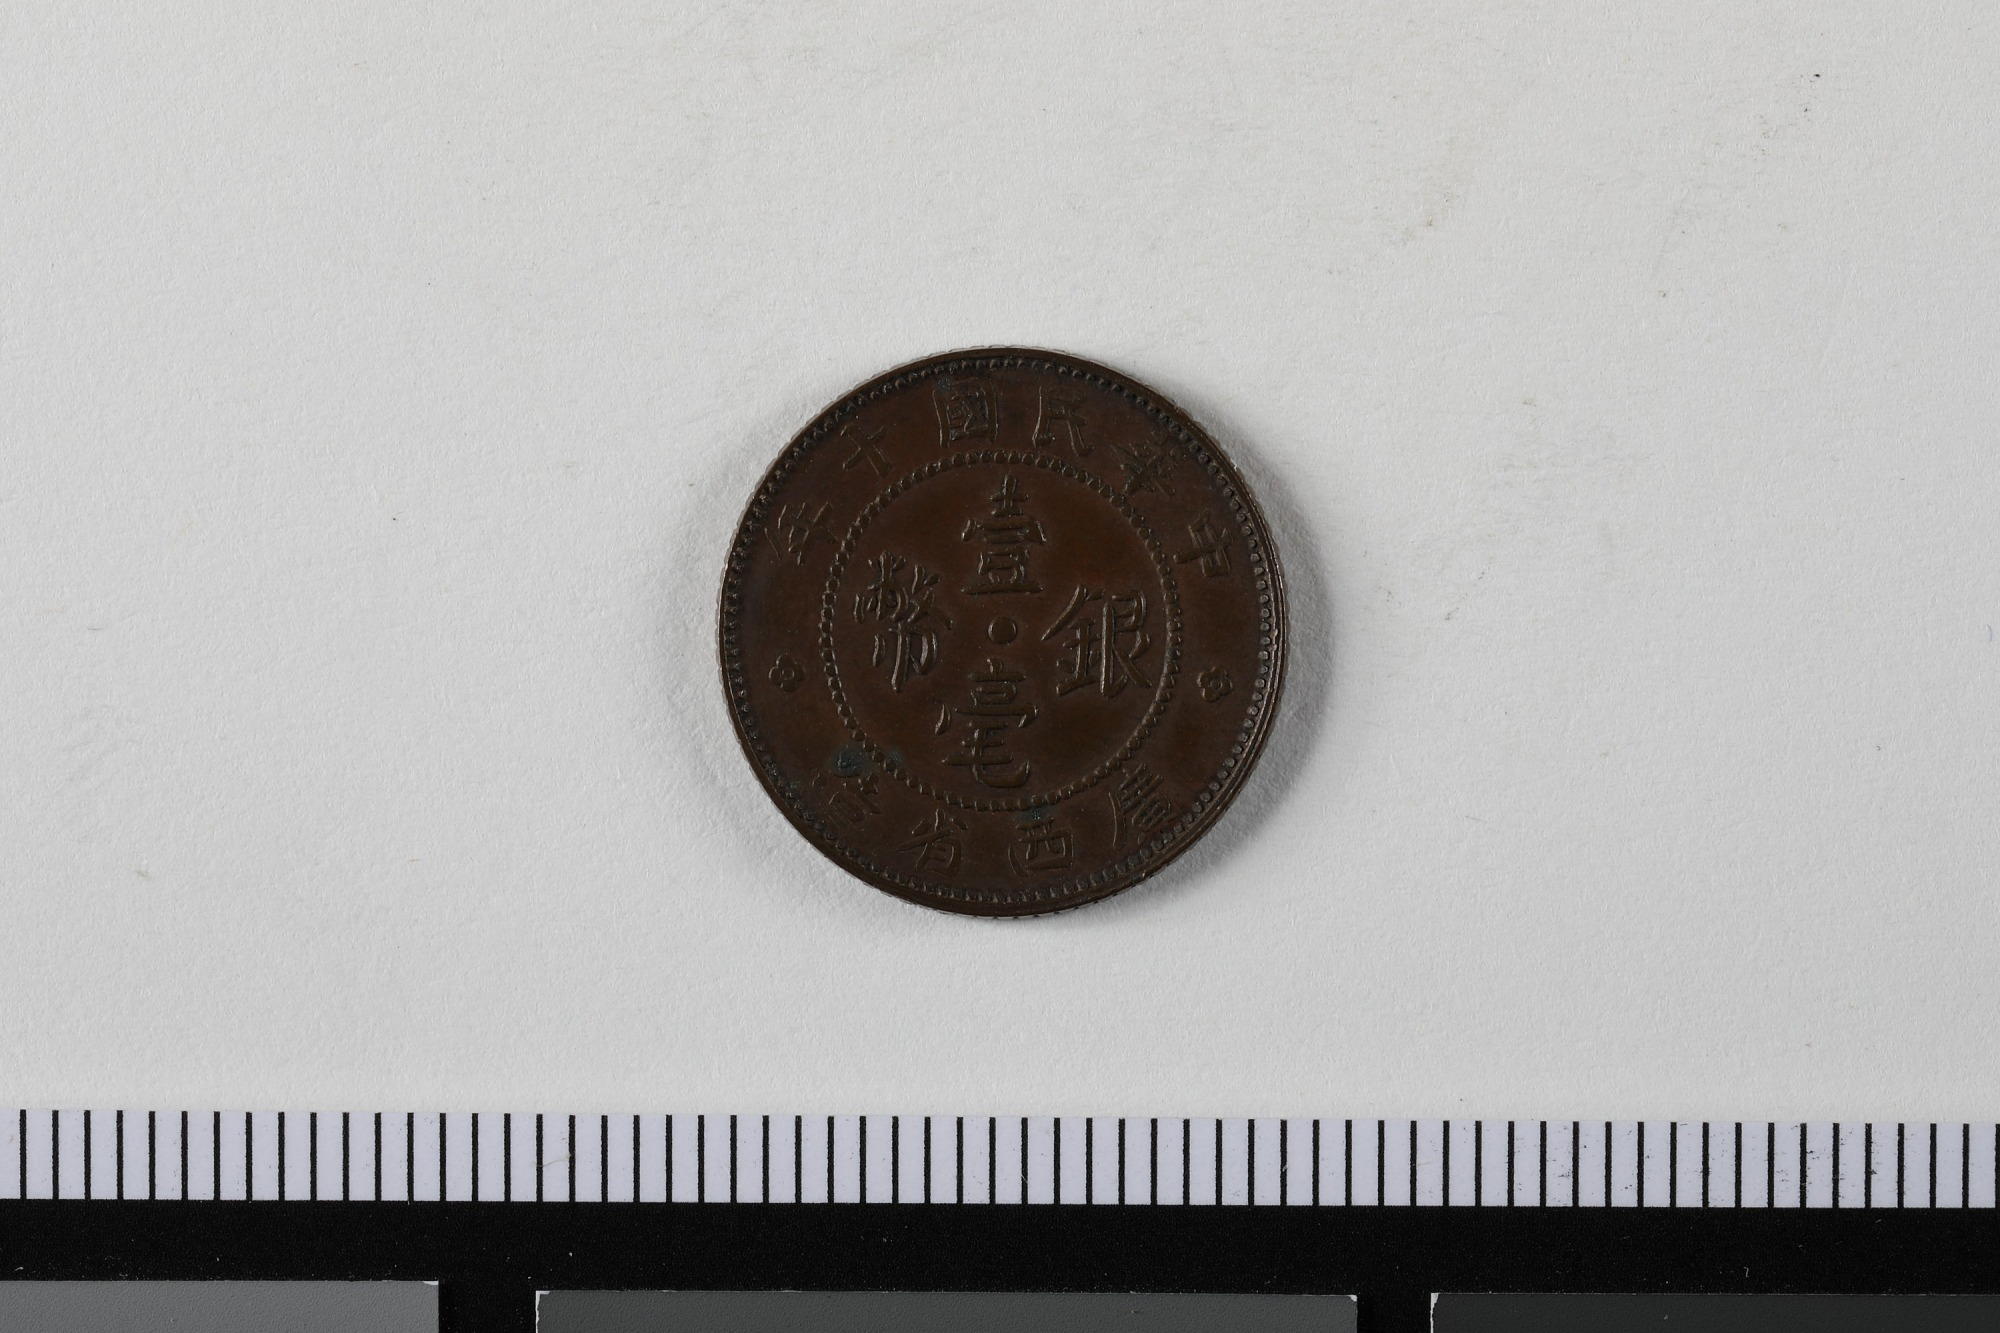 10 Cents, Guangxi, China, 1921